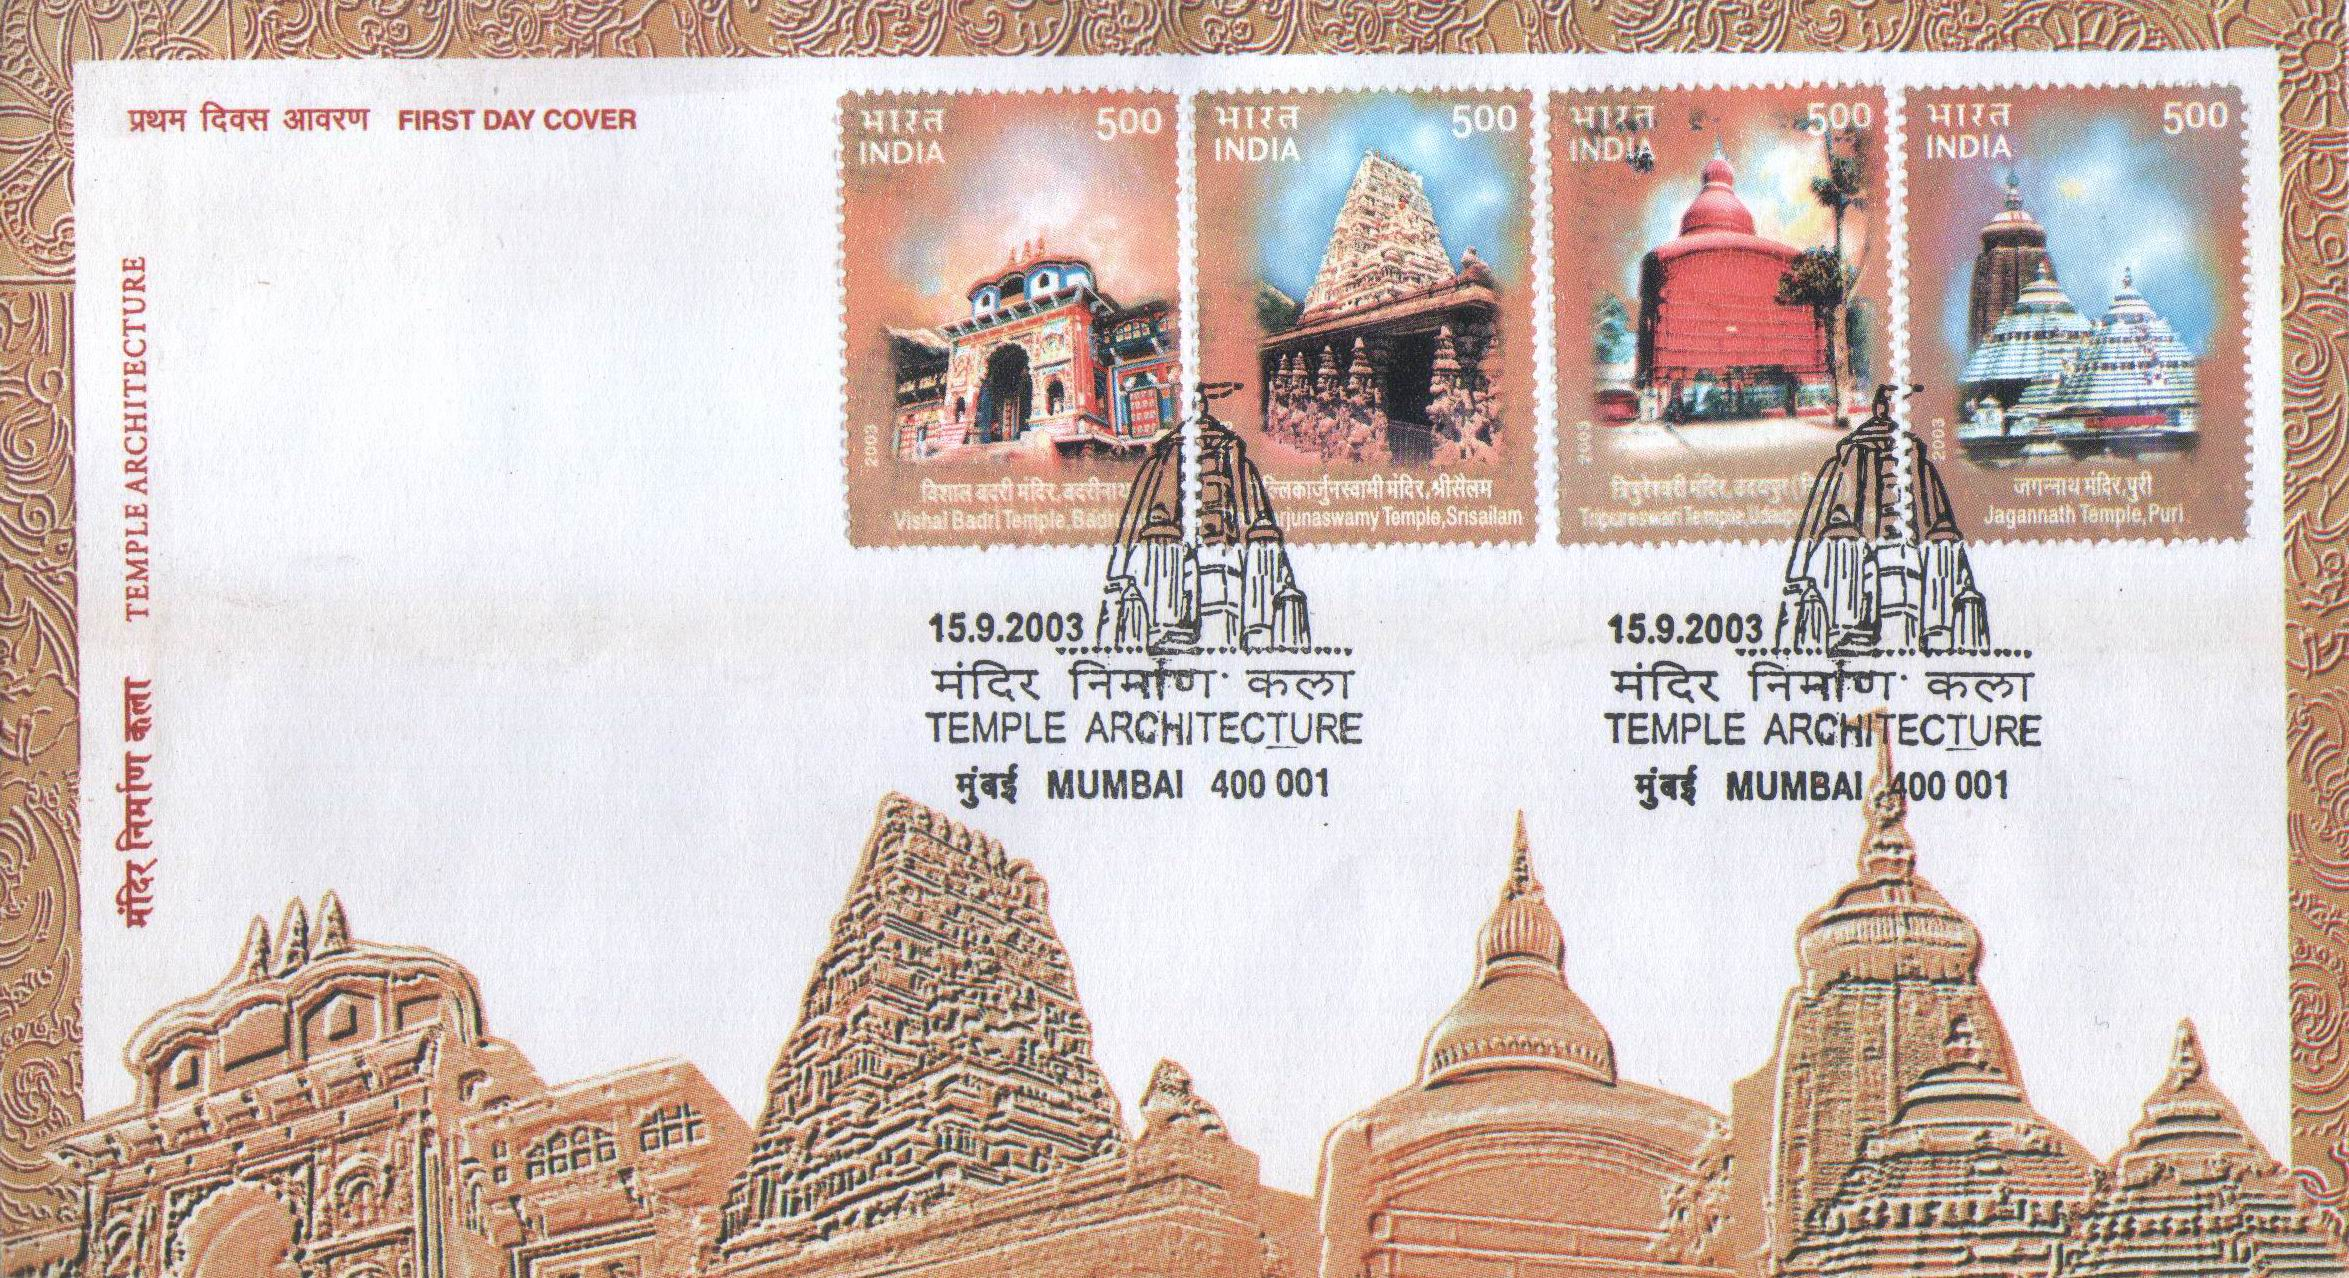 India Fdc 2003 Temple Architecture